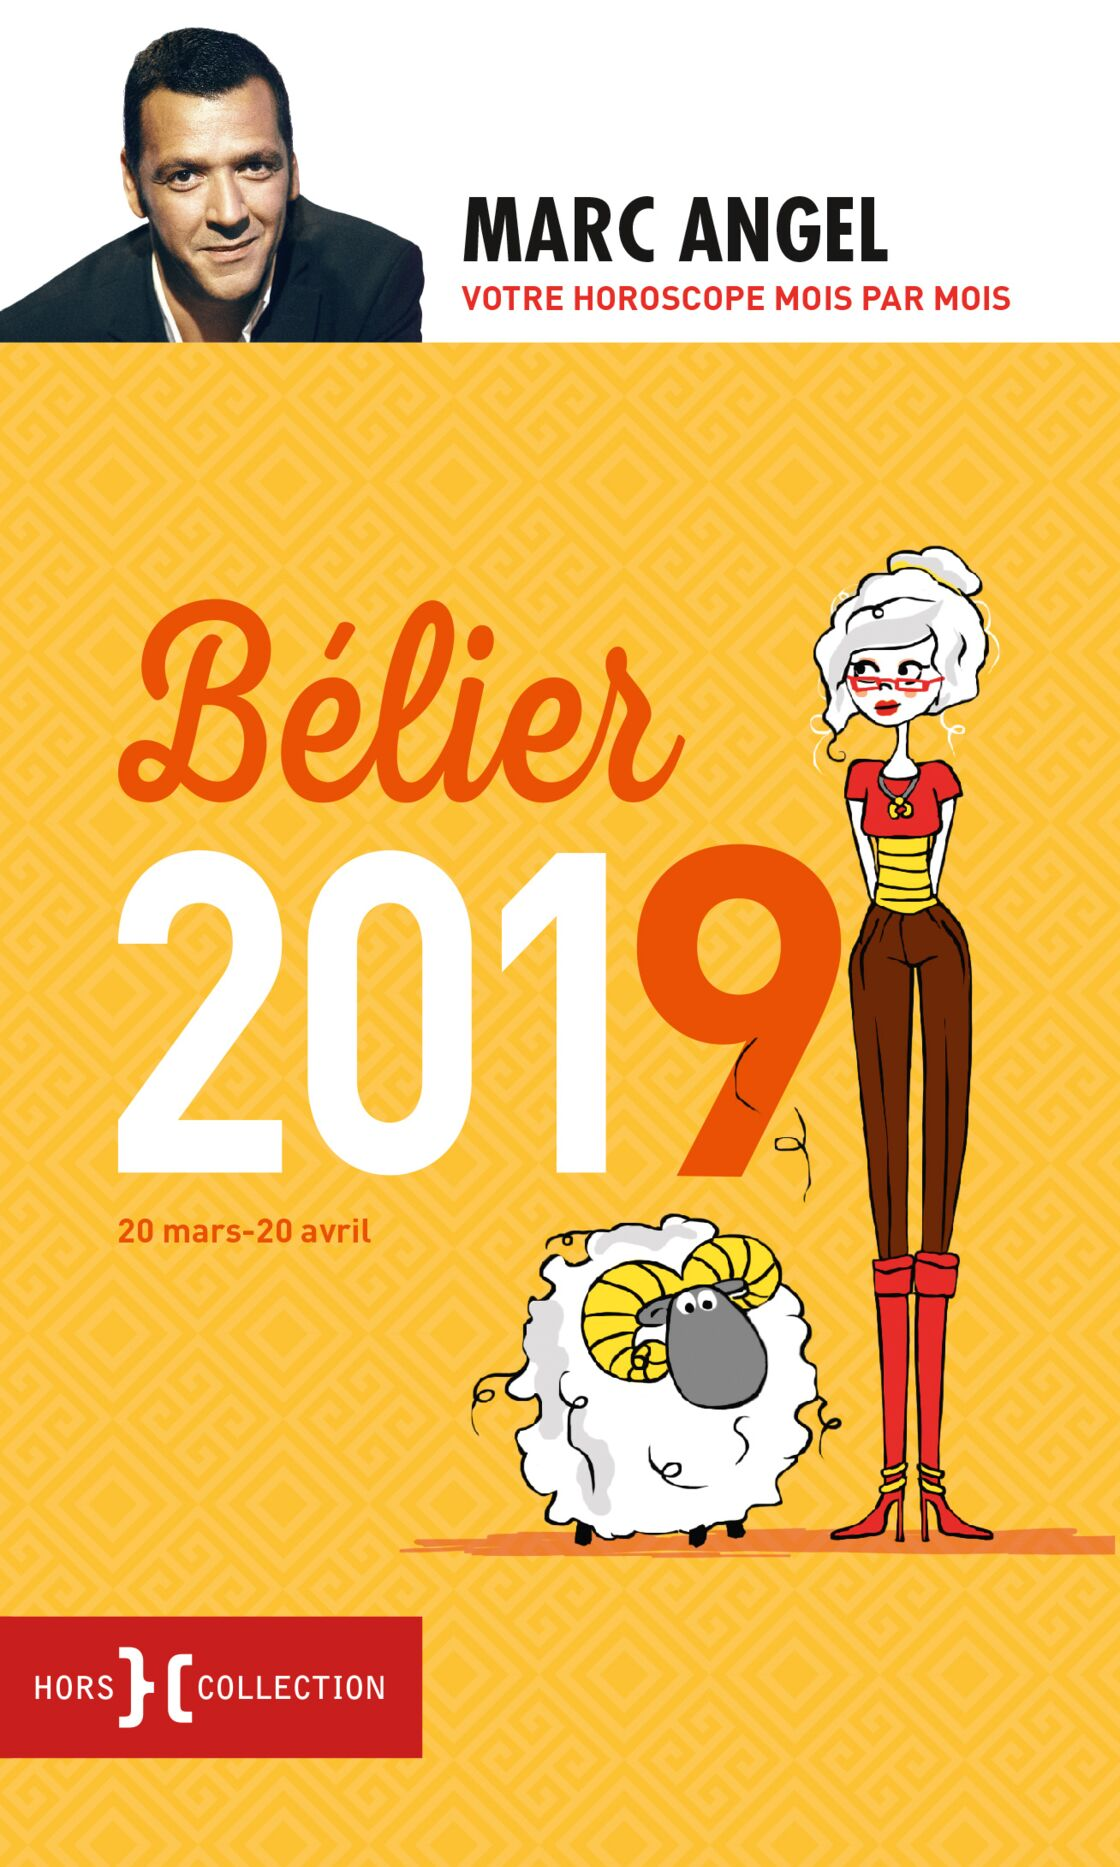 horoscope belier aout